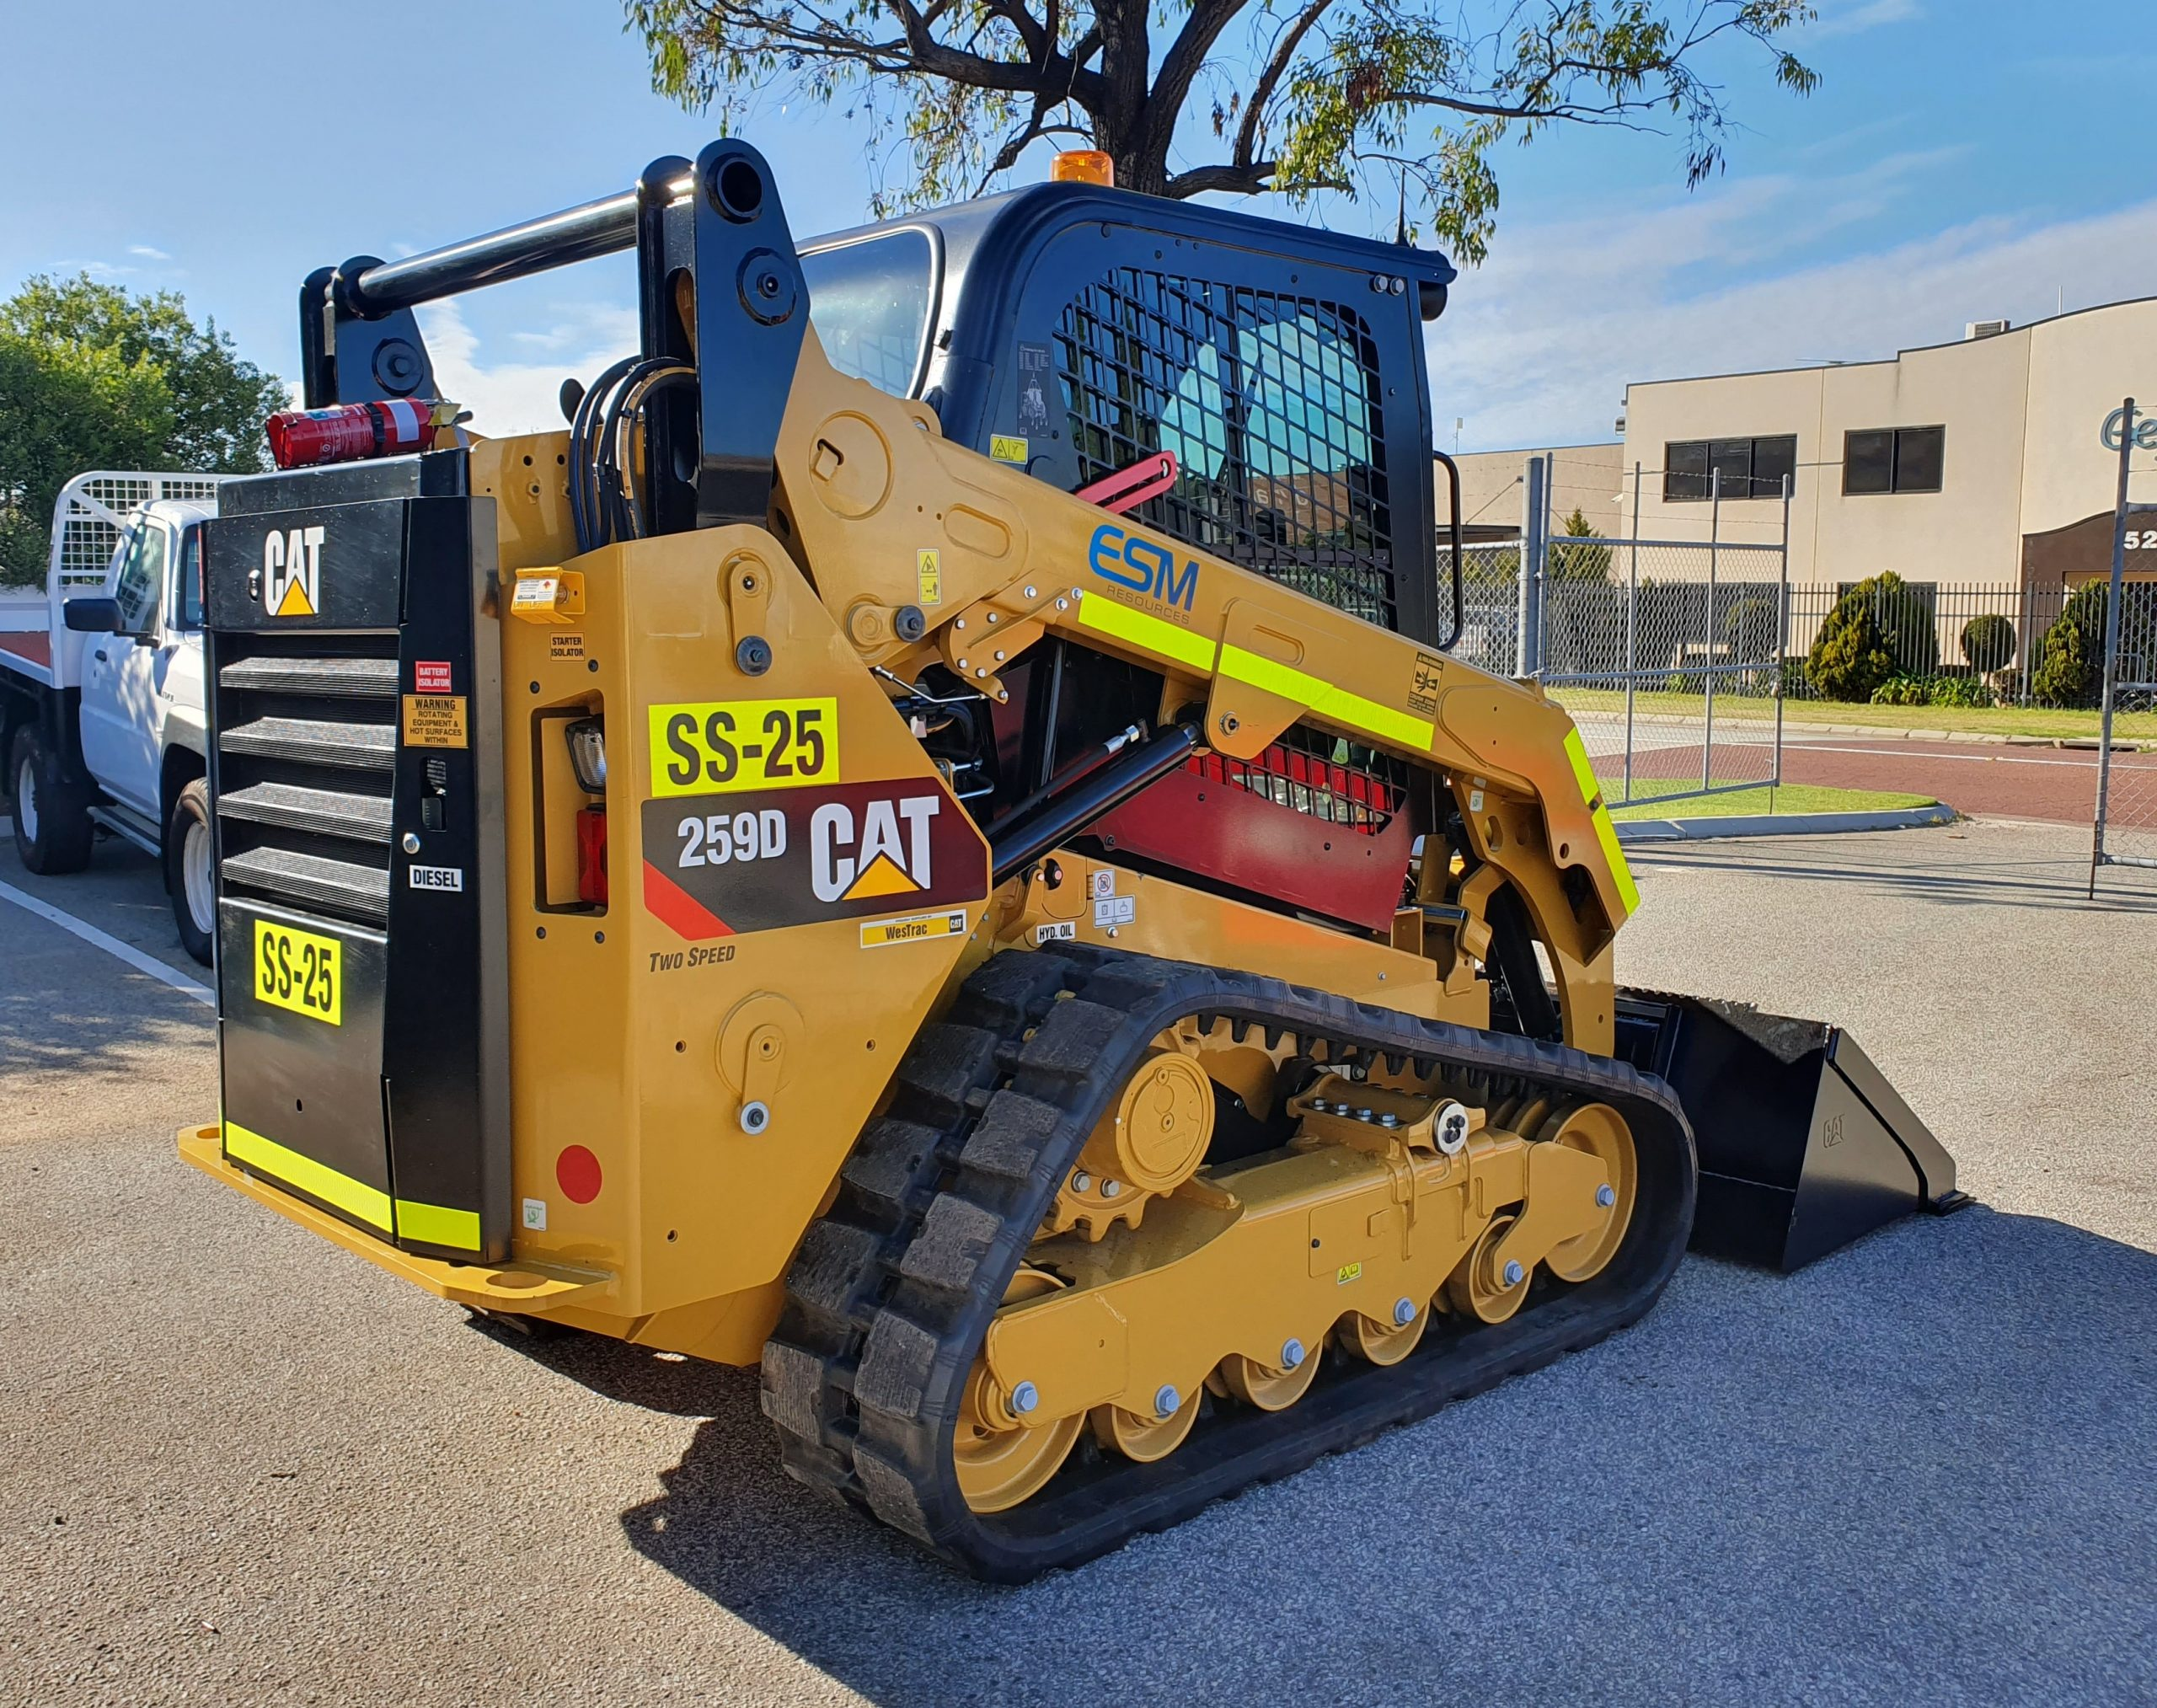 A new skid steer bobcat ready for deployment.